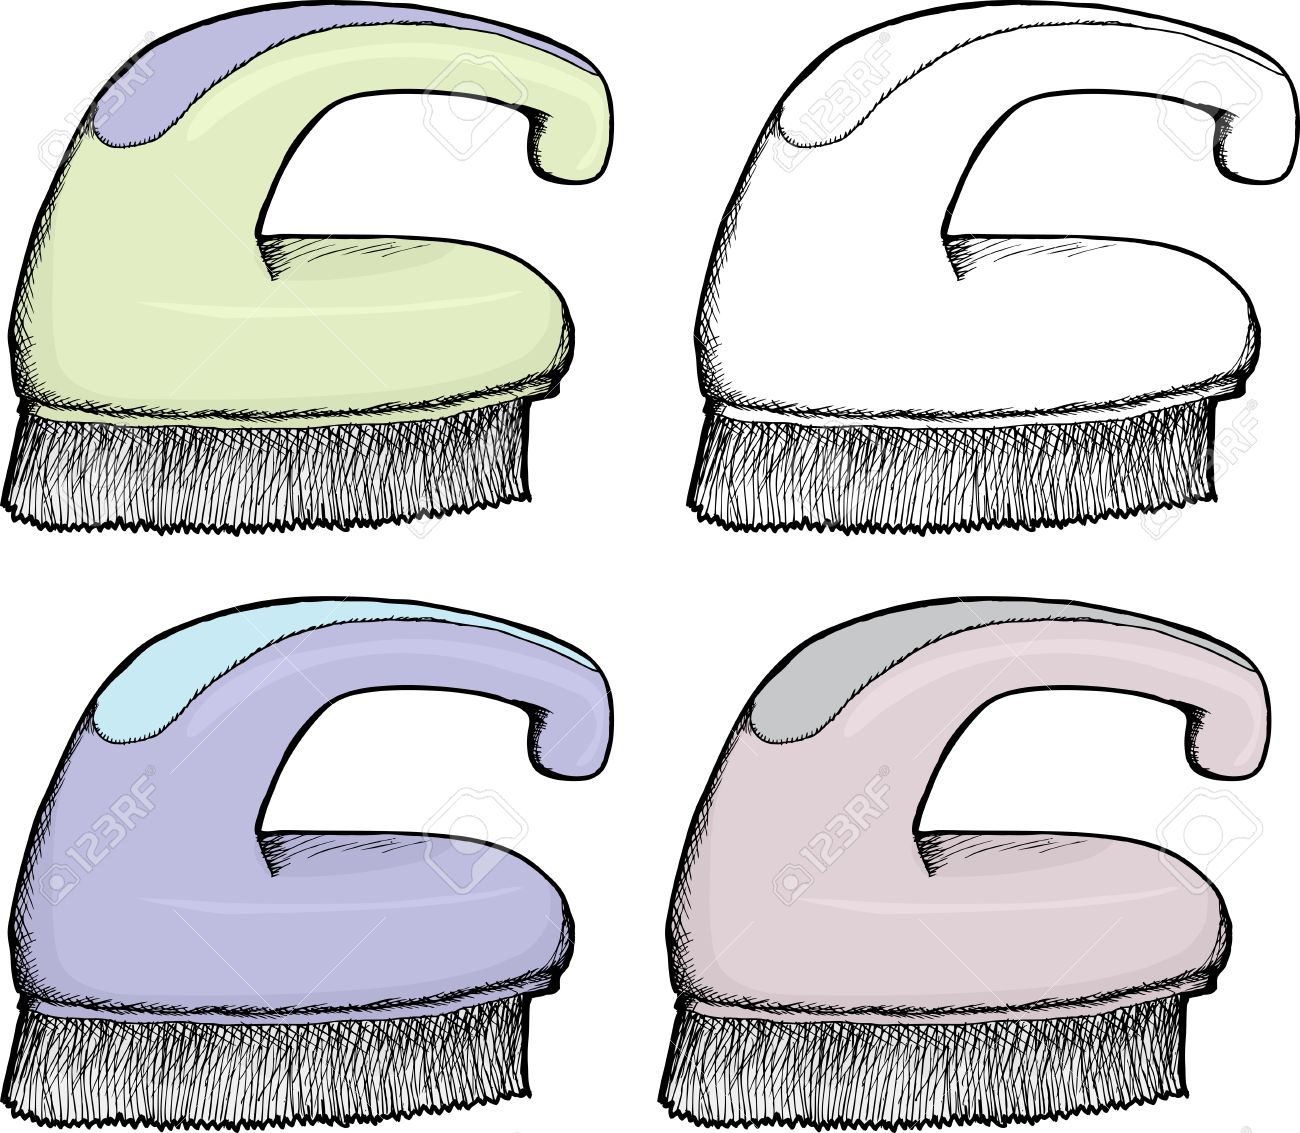 Isolated hand drawn plastic scrub brush in various colors Stock Vector - 17272201